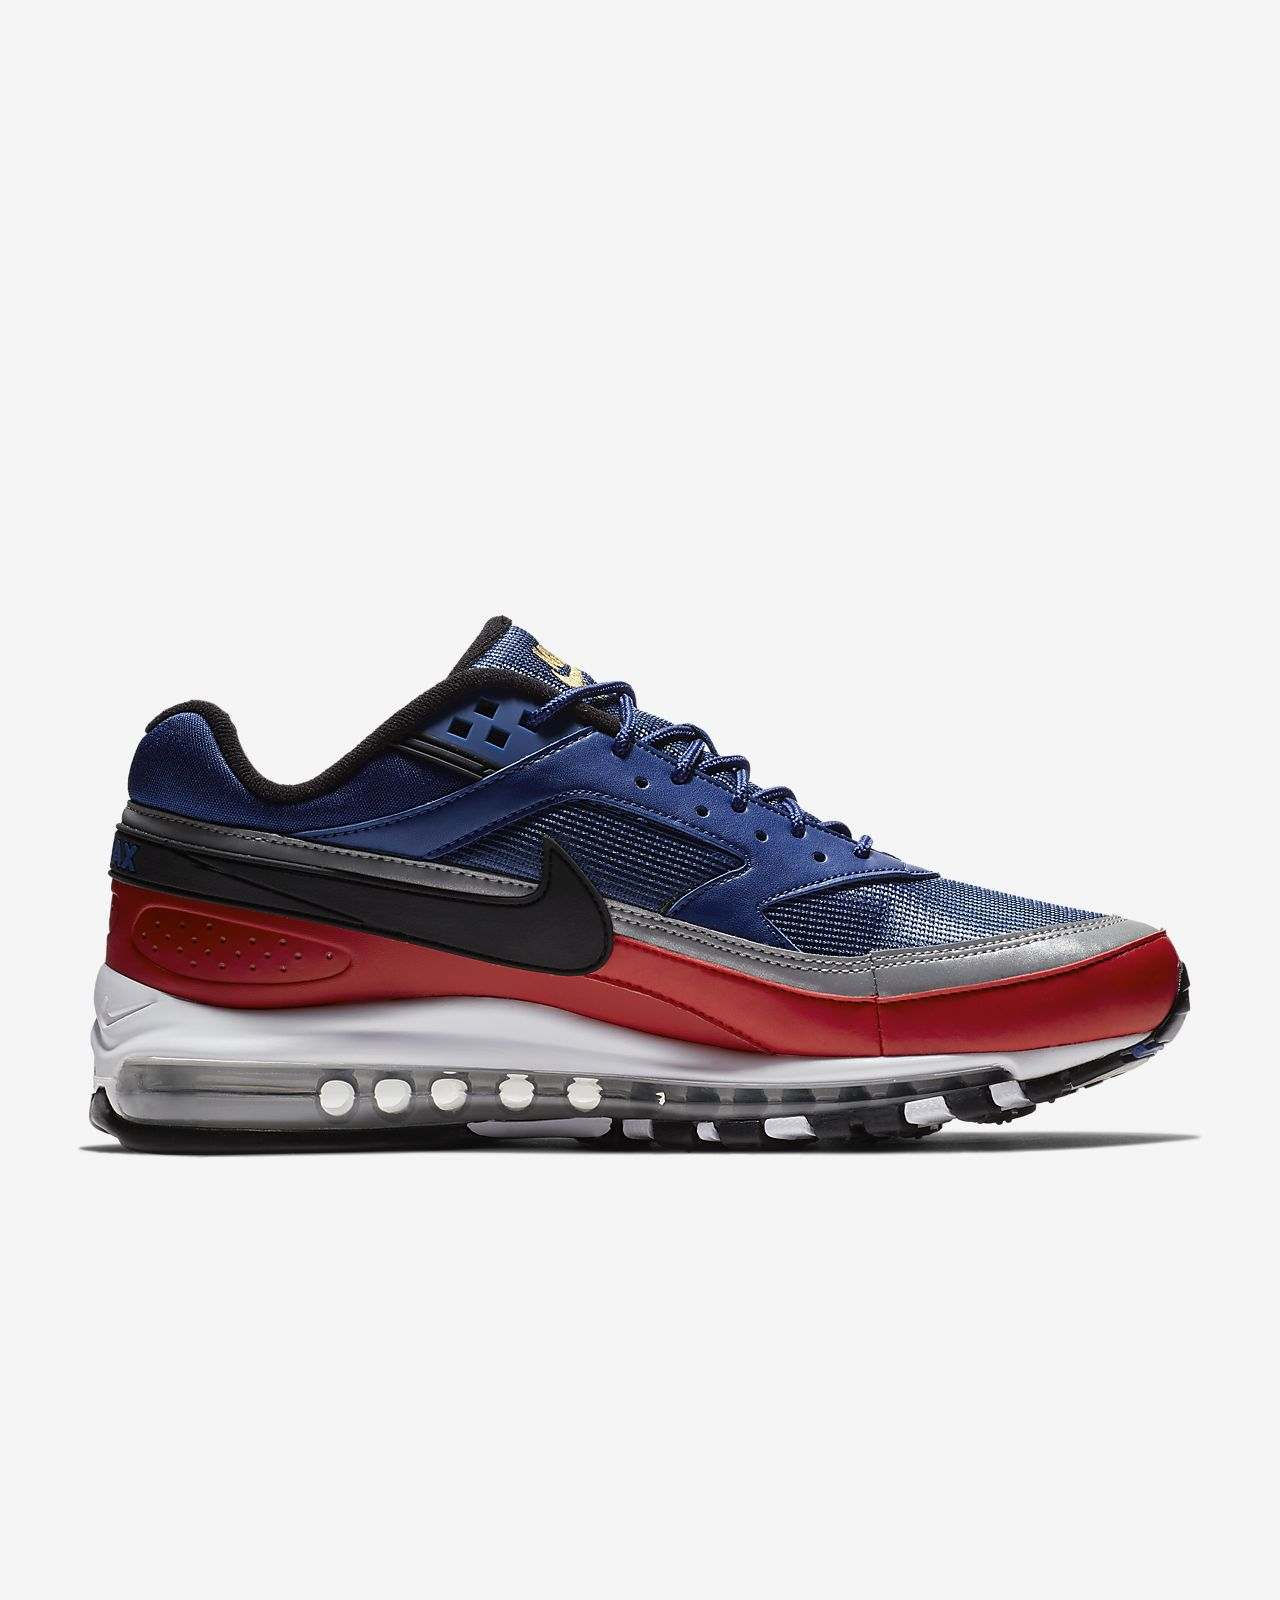 803176d83c669 Chaussure Nike Air Max 97 BW pour Homme. Nike.com CA